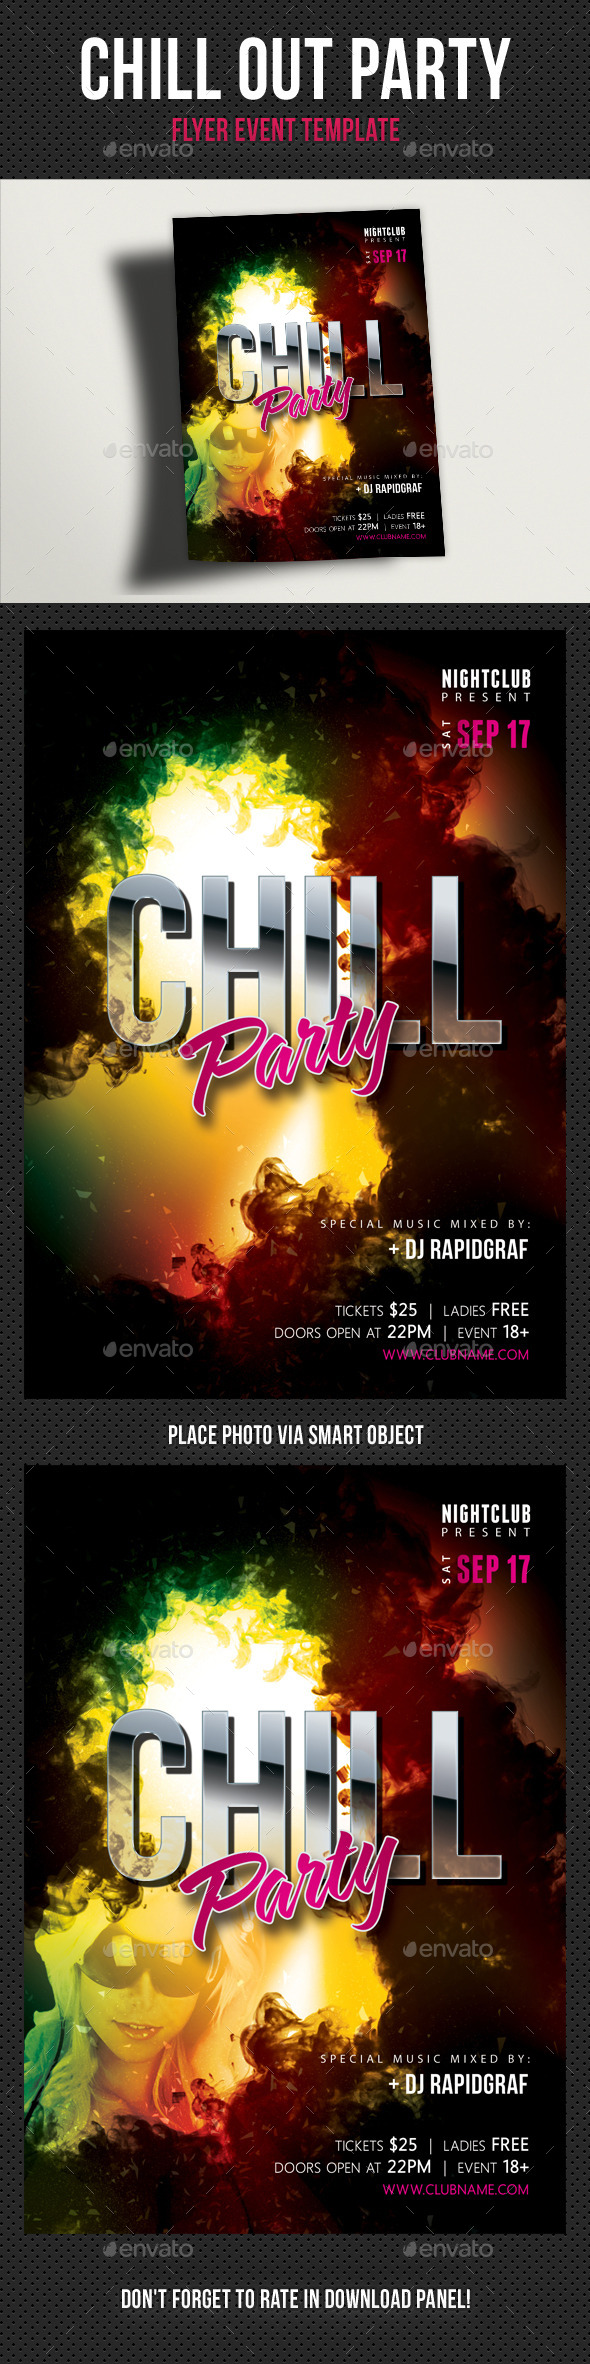 Chill Out Flyer V02 - Clubs & Parties Events